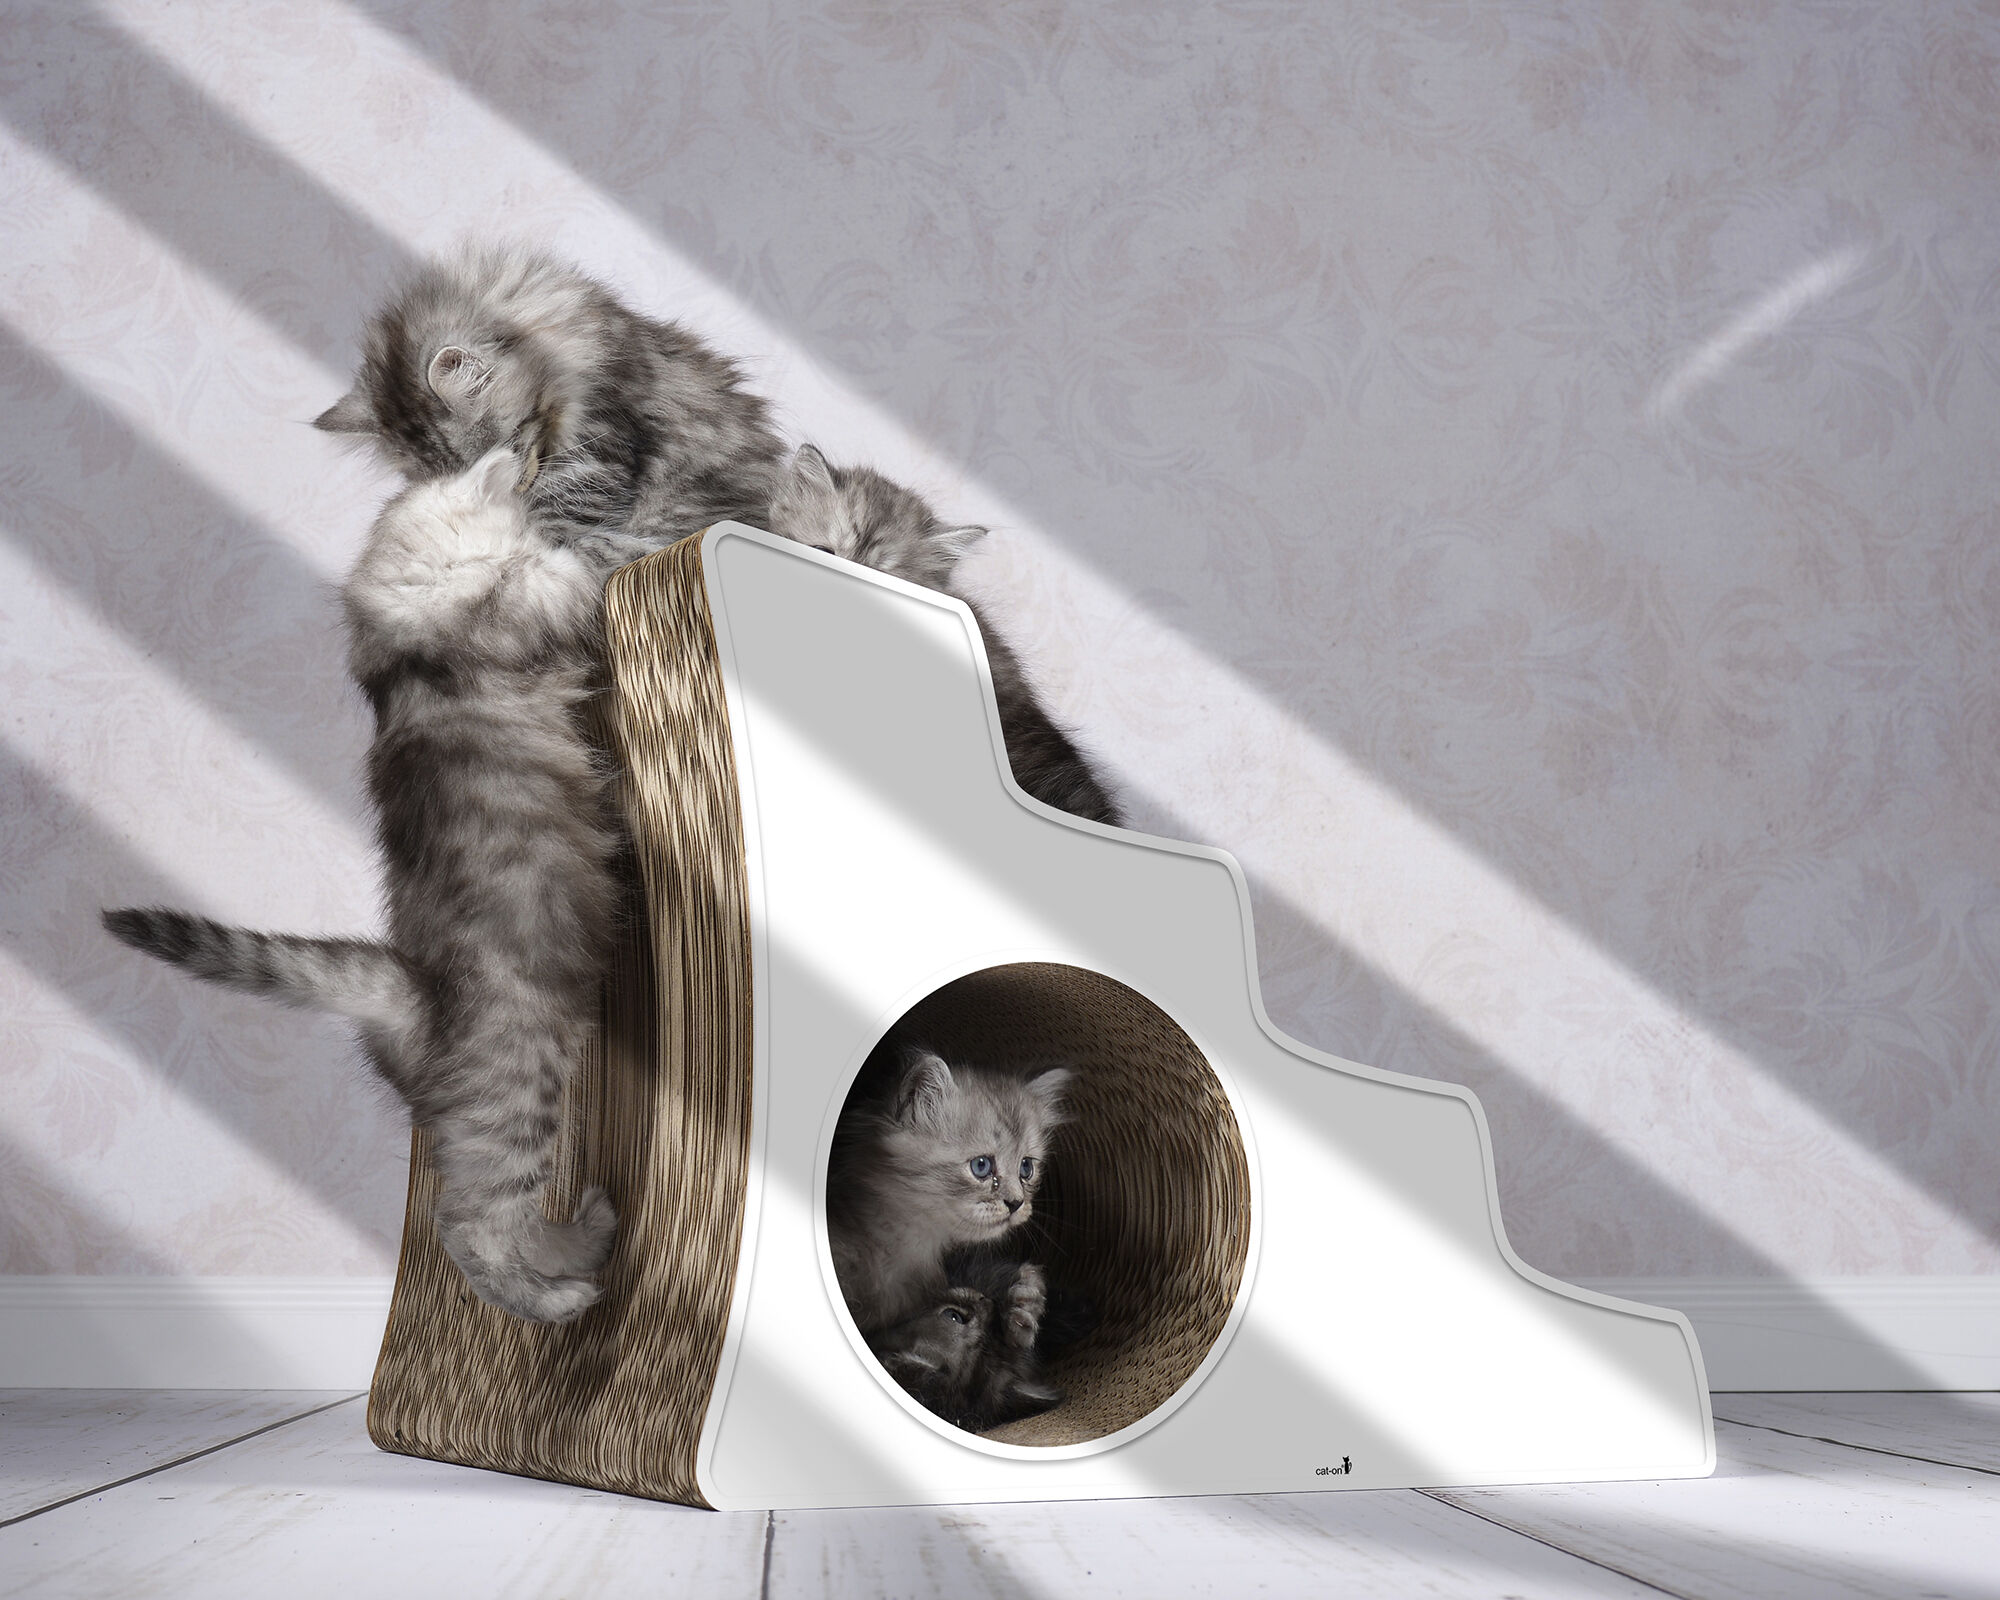 Lescalier cat scratcher